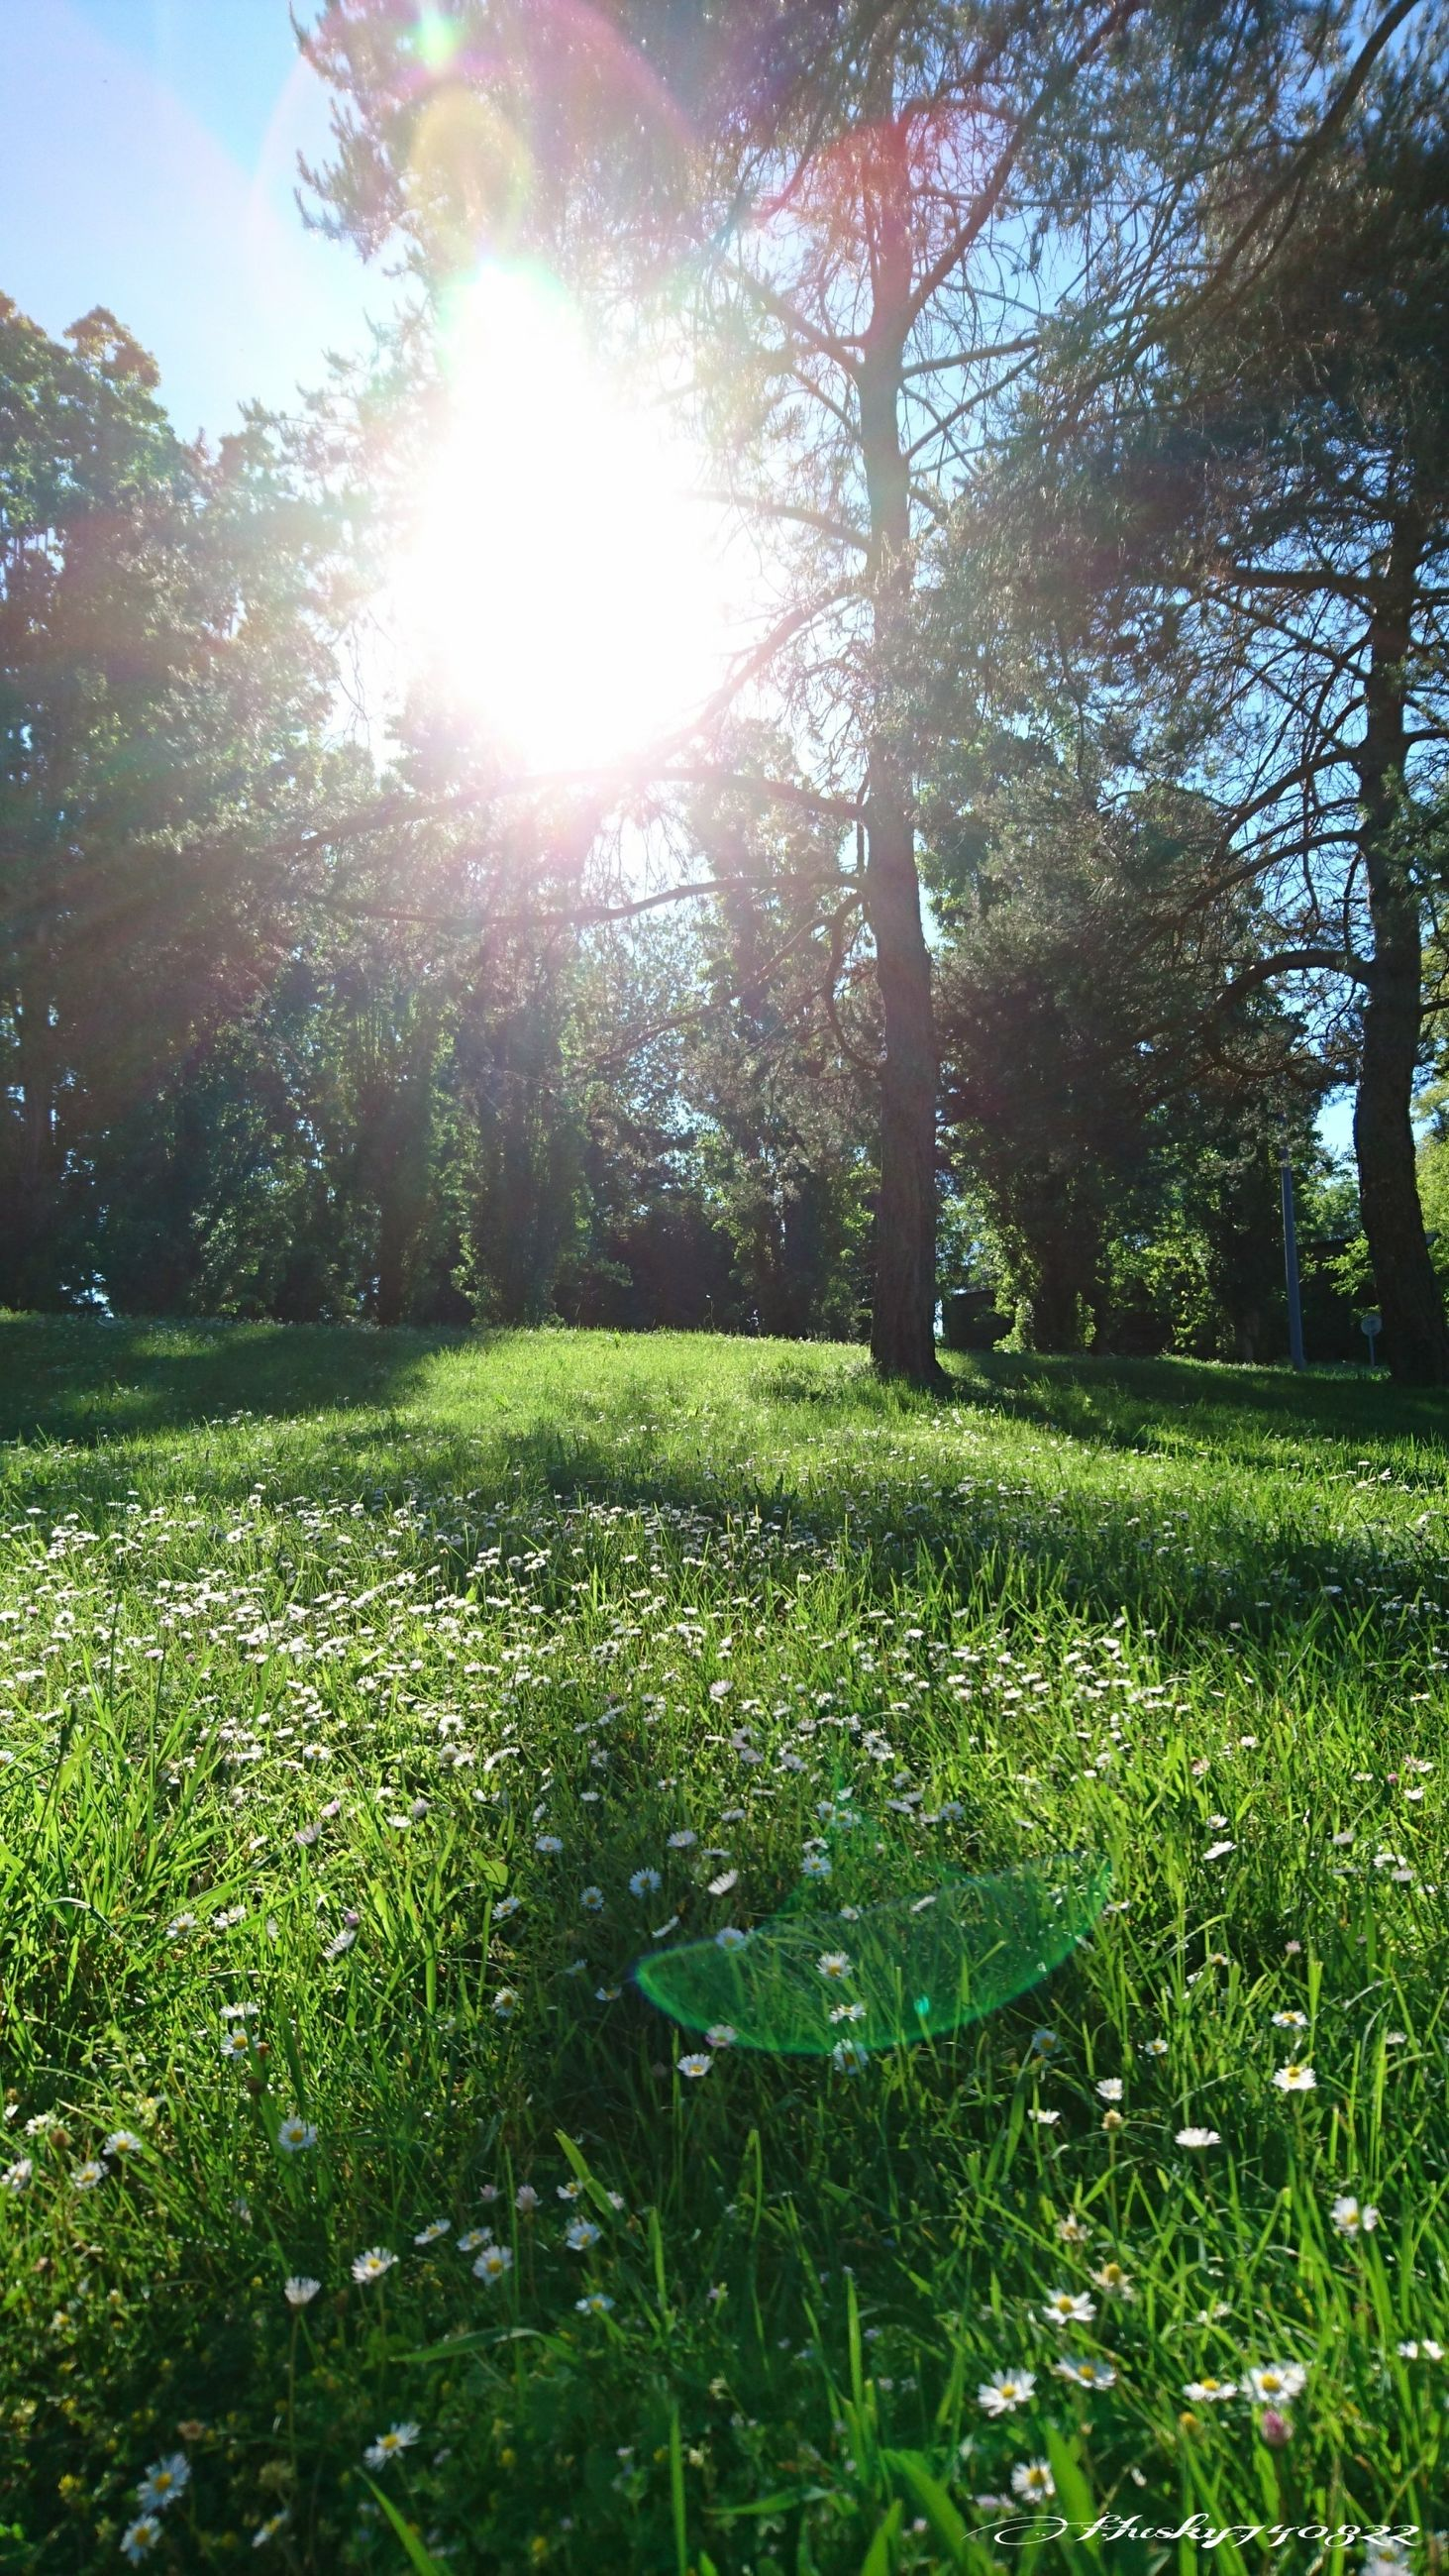 nature, tree, sunbeam, tranquility, grass, beauty in nature, growth, tranquil scene, sunlight, lens flare, scenics, bright, sun, green color, field, day, idyllic, landscape, no people, outdoors, branch, sky